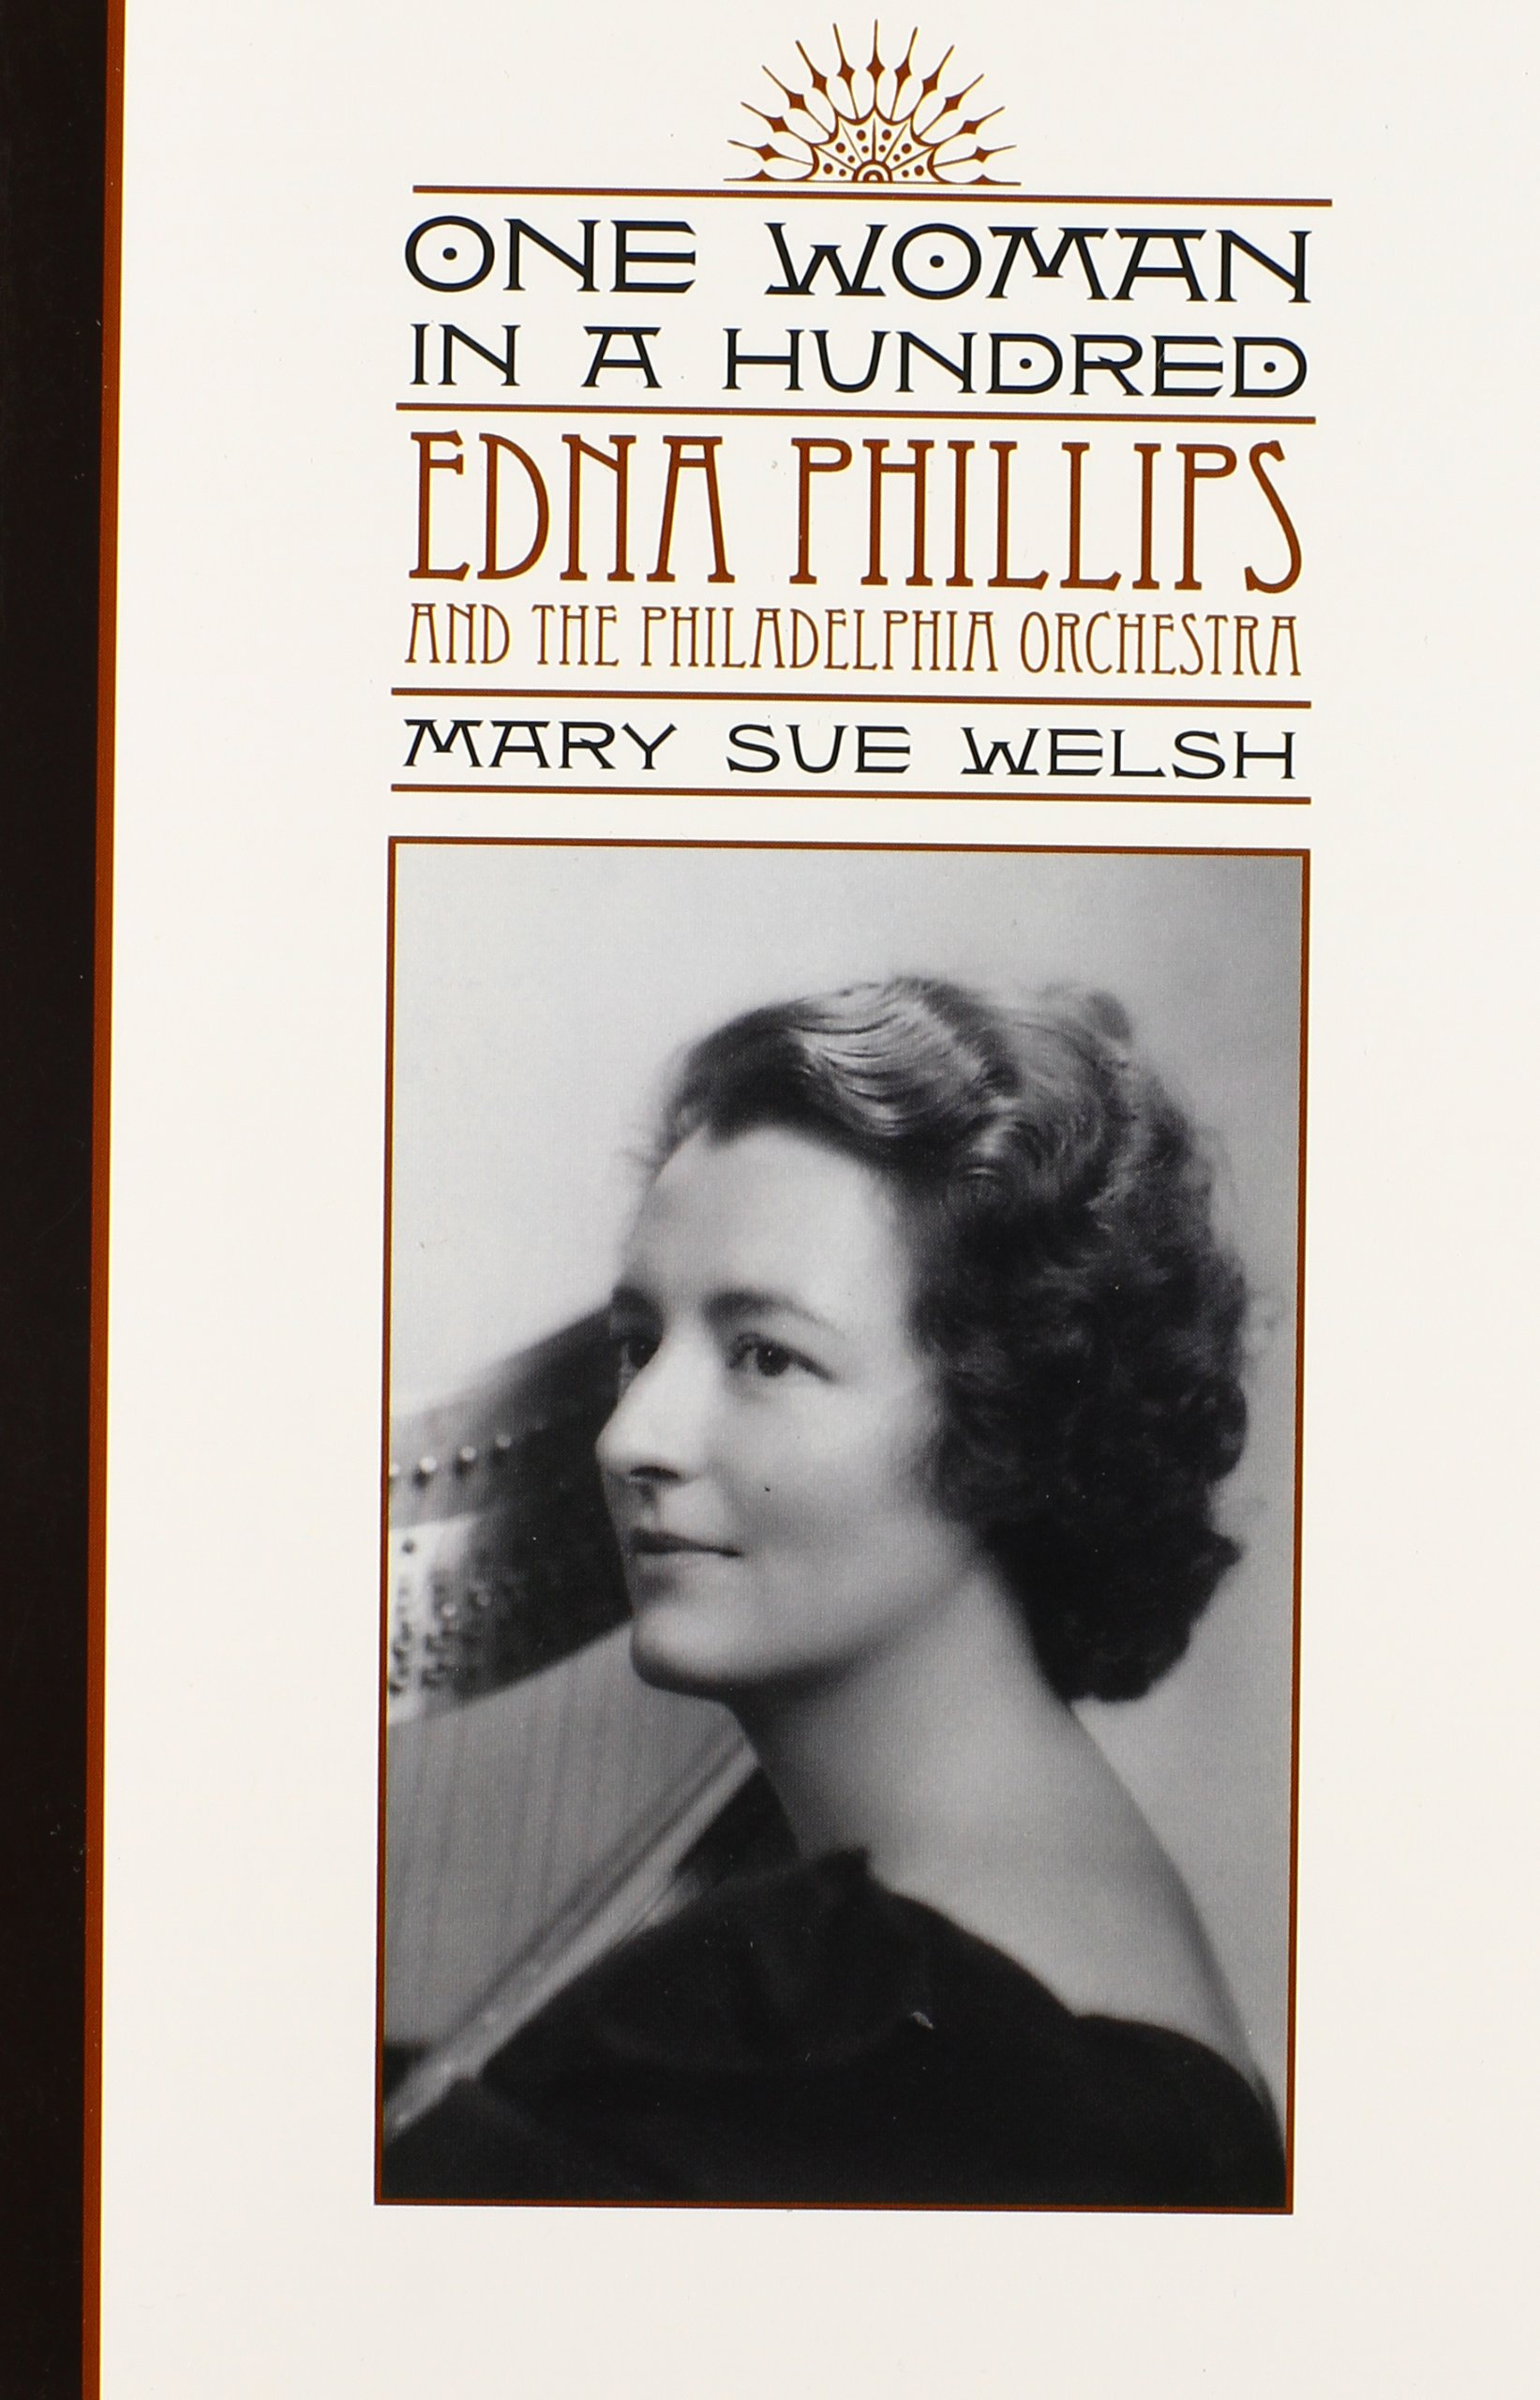 Download One Woman in a Hundred: Edna Phillips and the Philadelphia Orchestra (Music in American Life) pdf